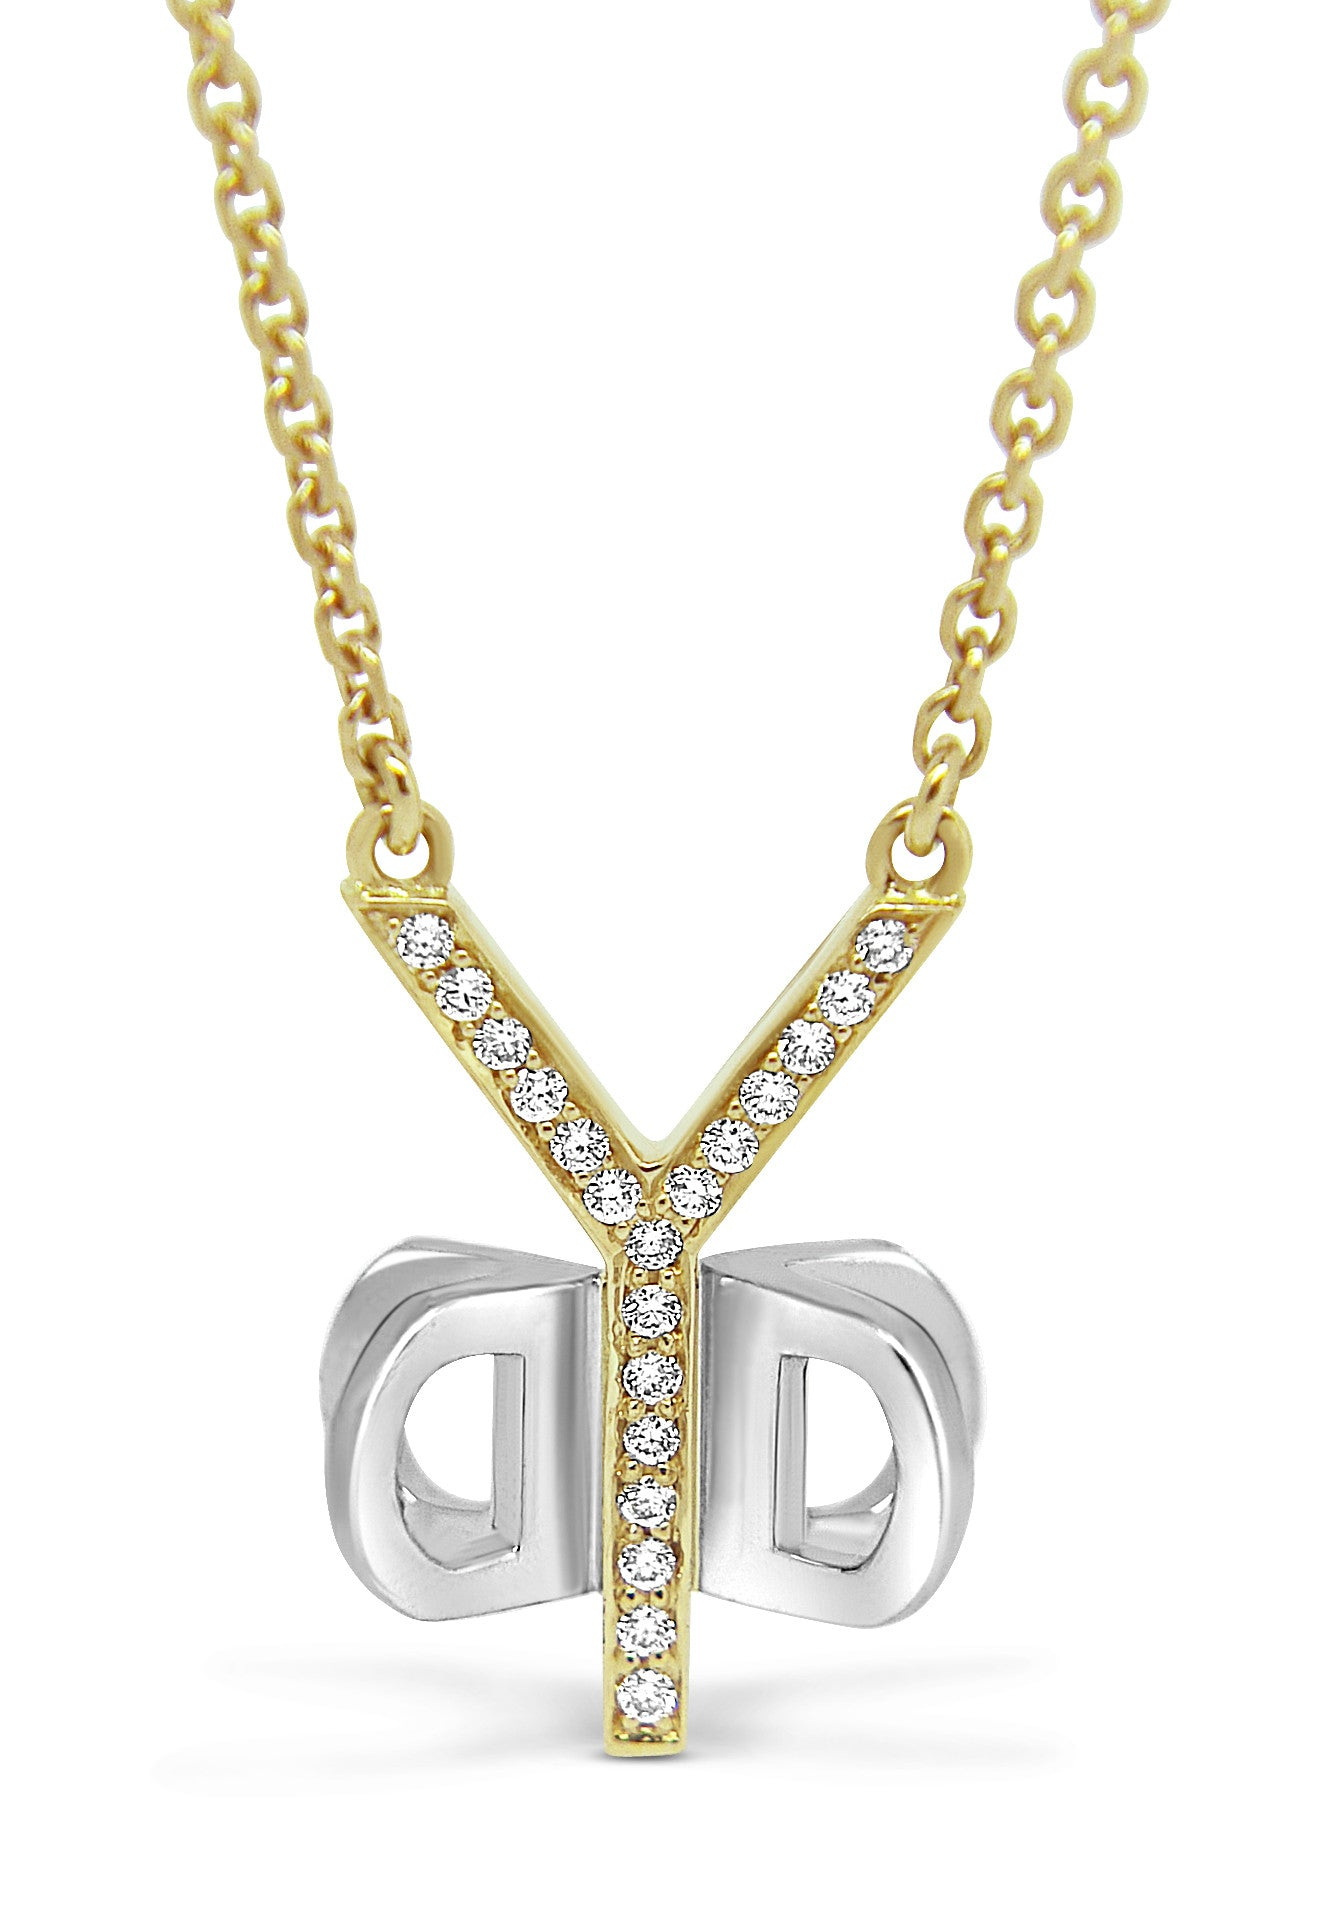 Bespoke Pamela pendant - 18ct white and rose gold and 2ct of conflict-free diamonds